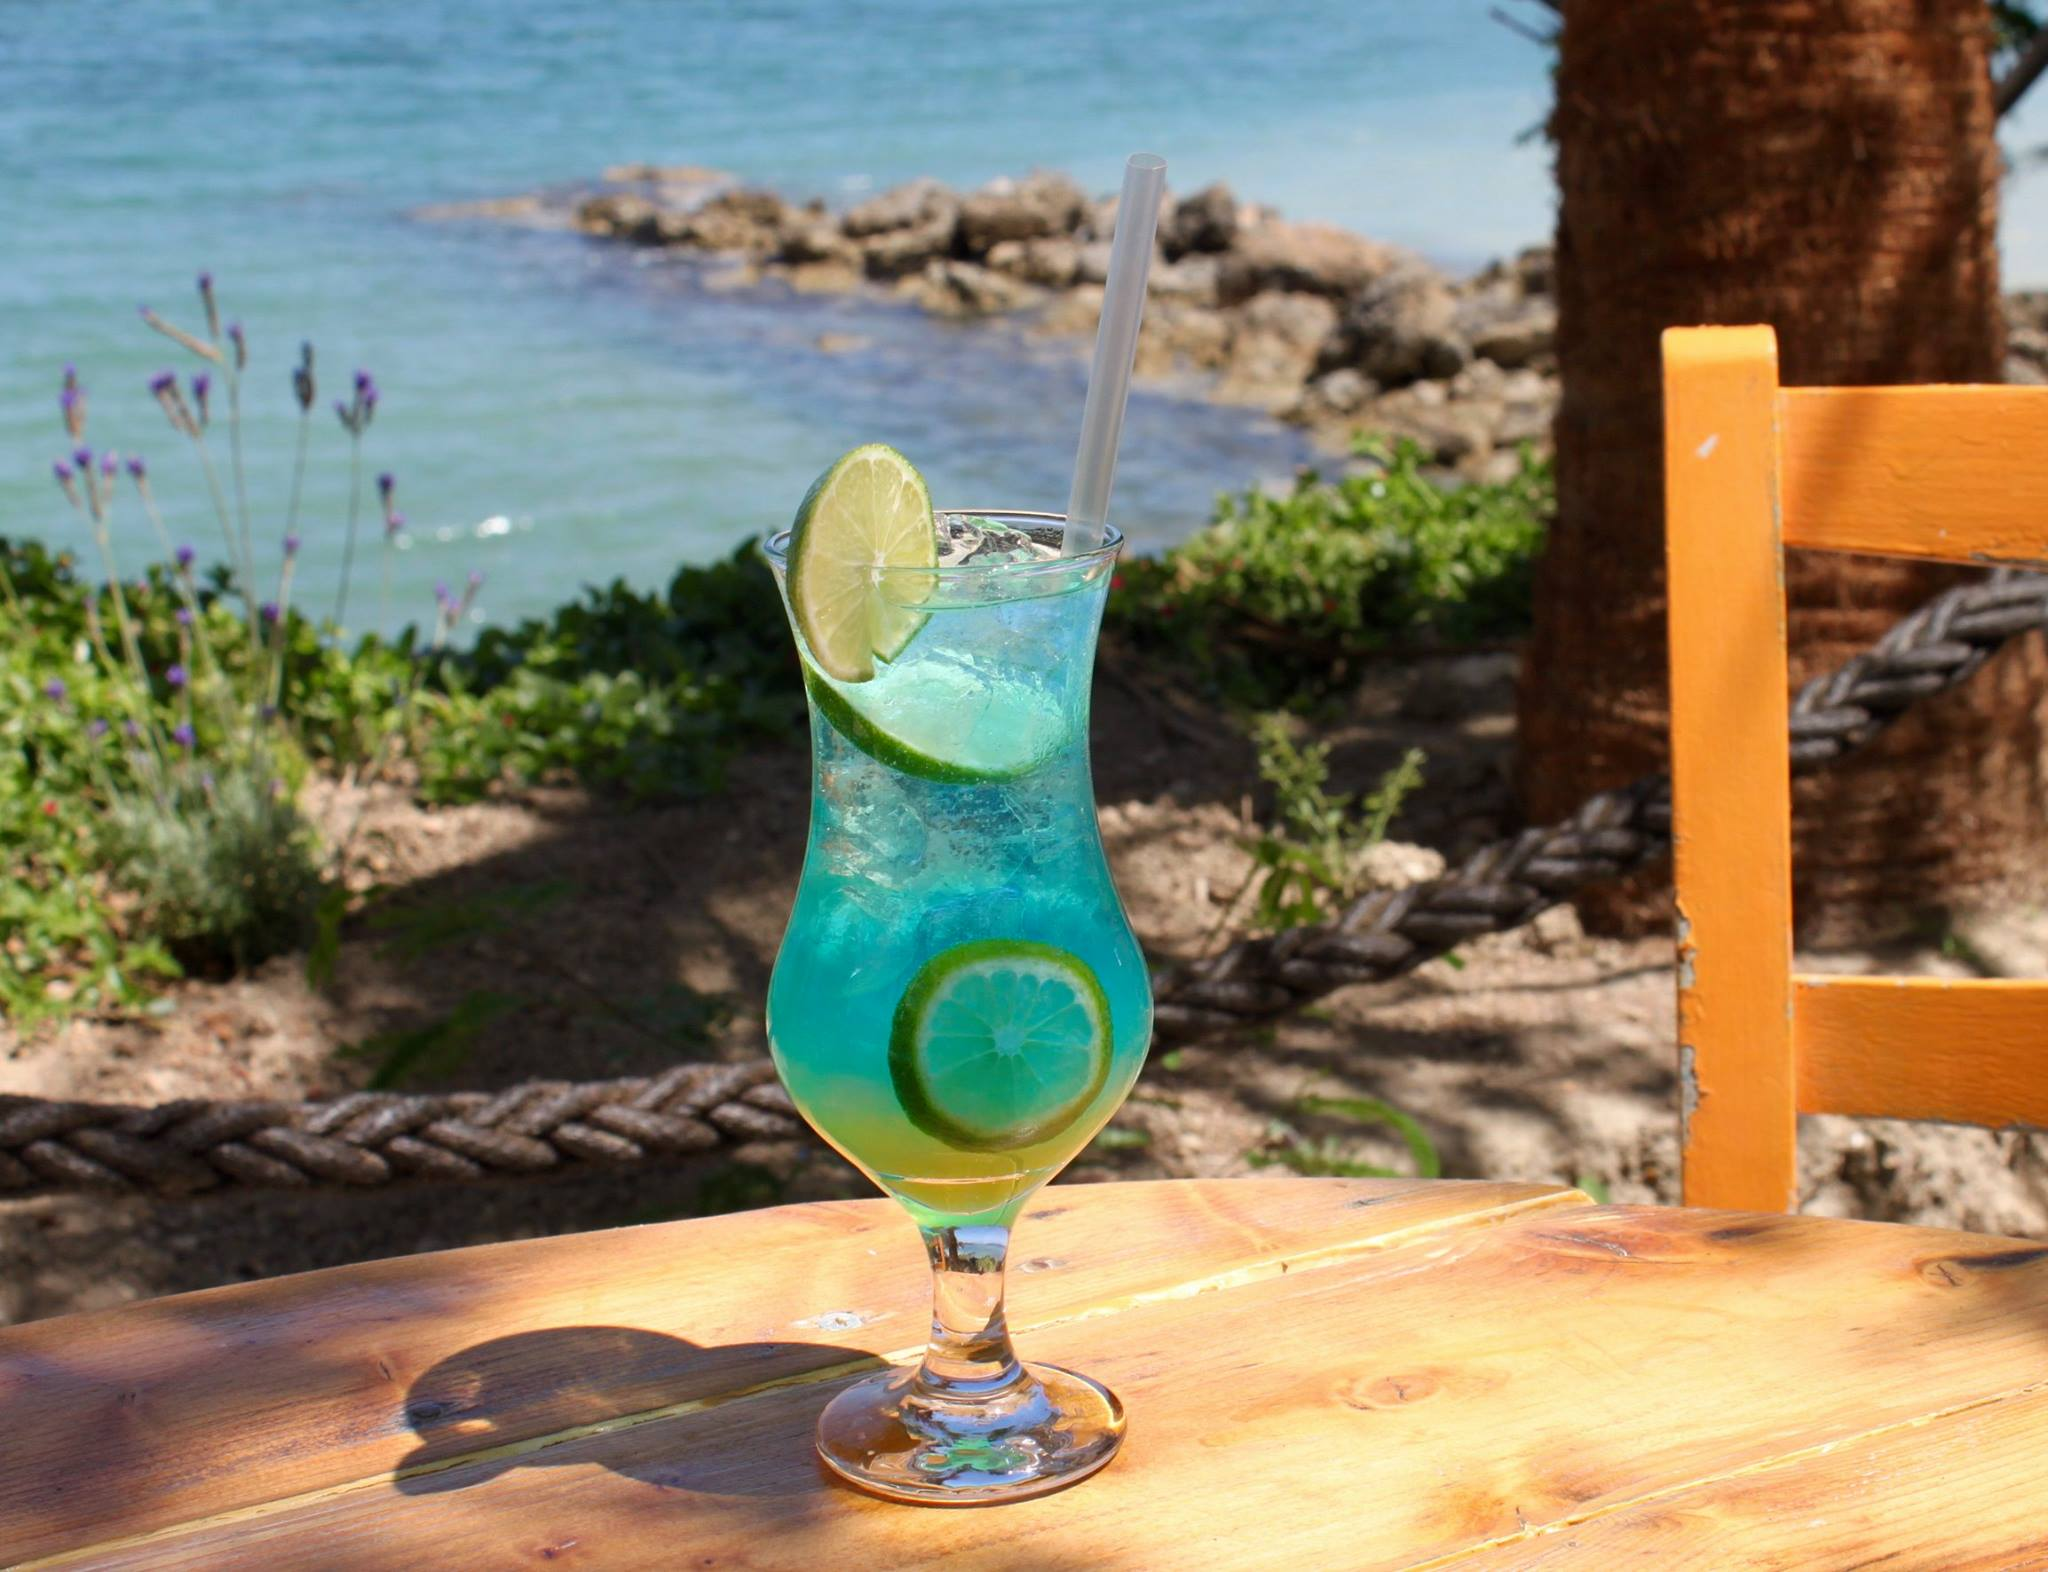 sirena-bay-bar-7.jpg